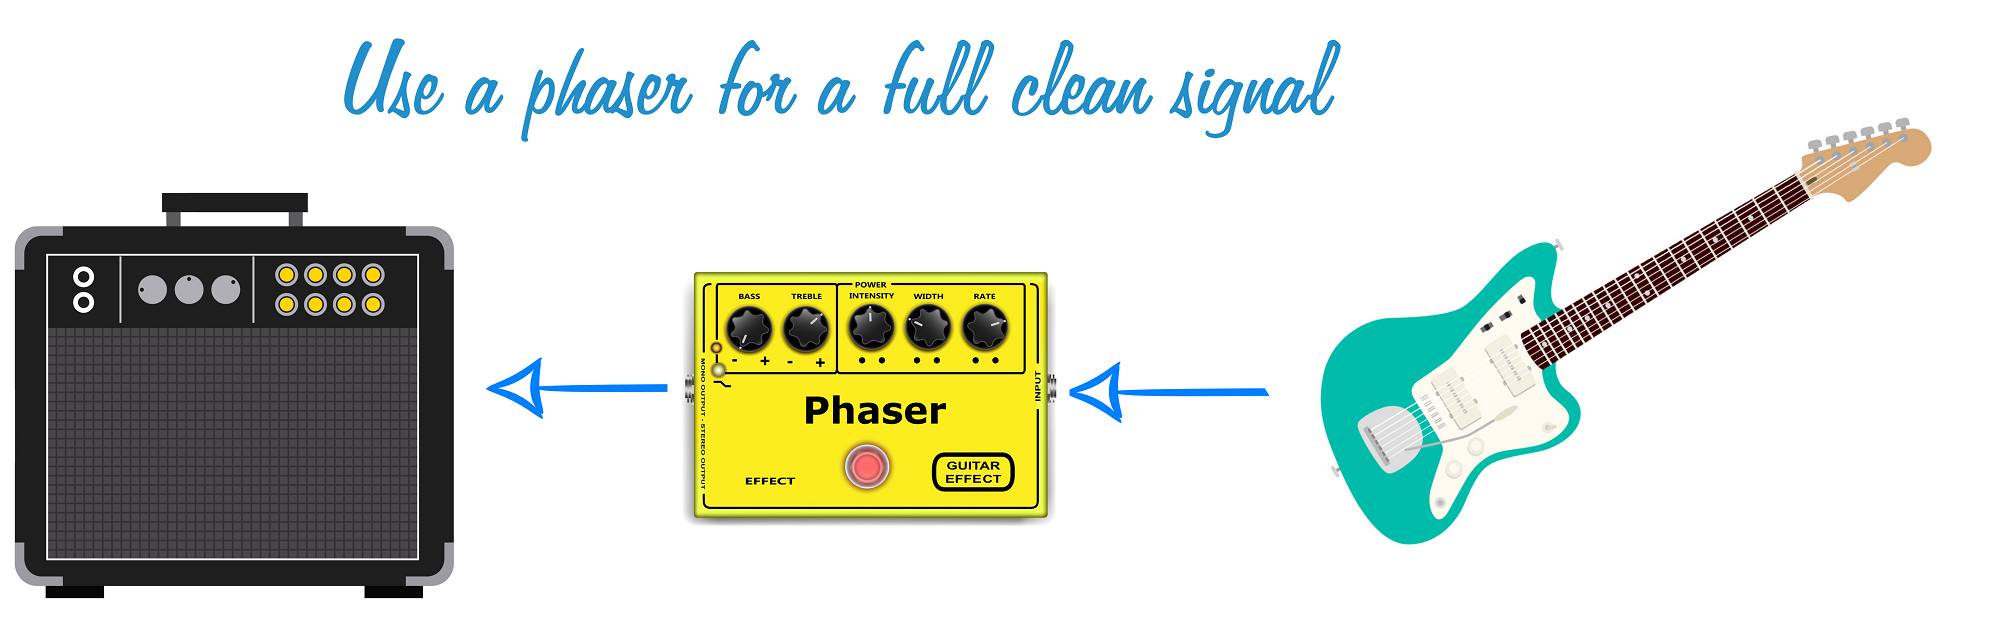 Phaser Pedal for Clean Signal